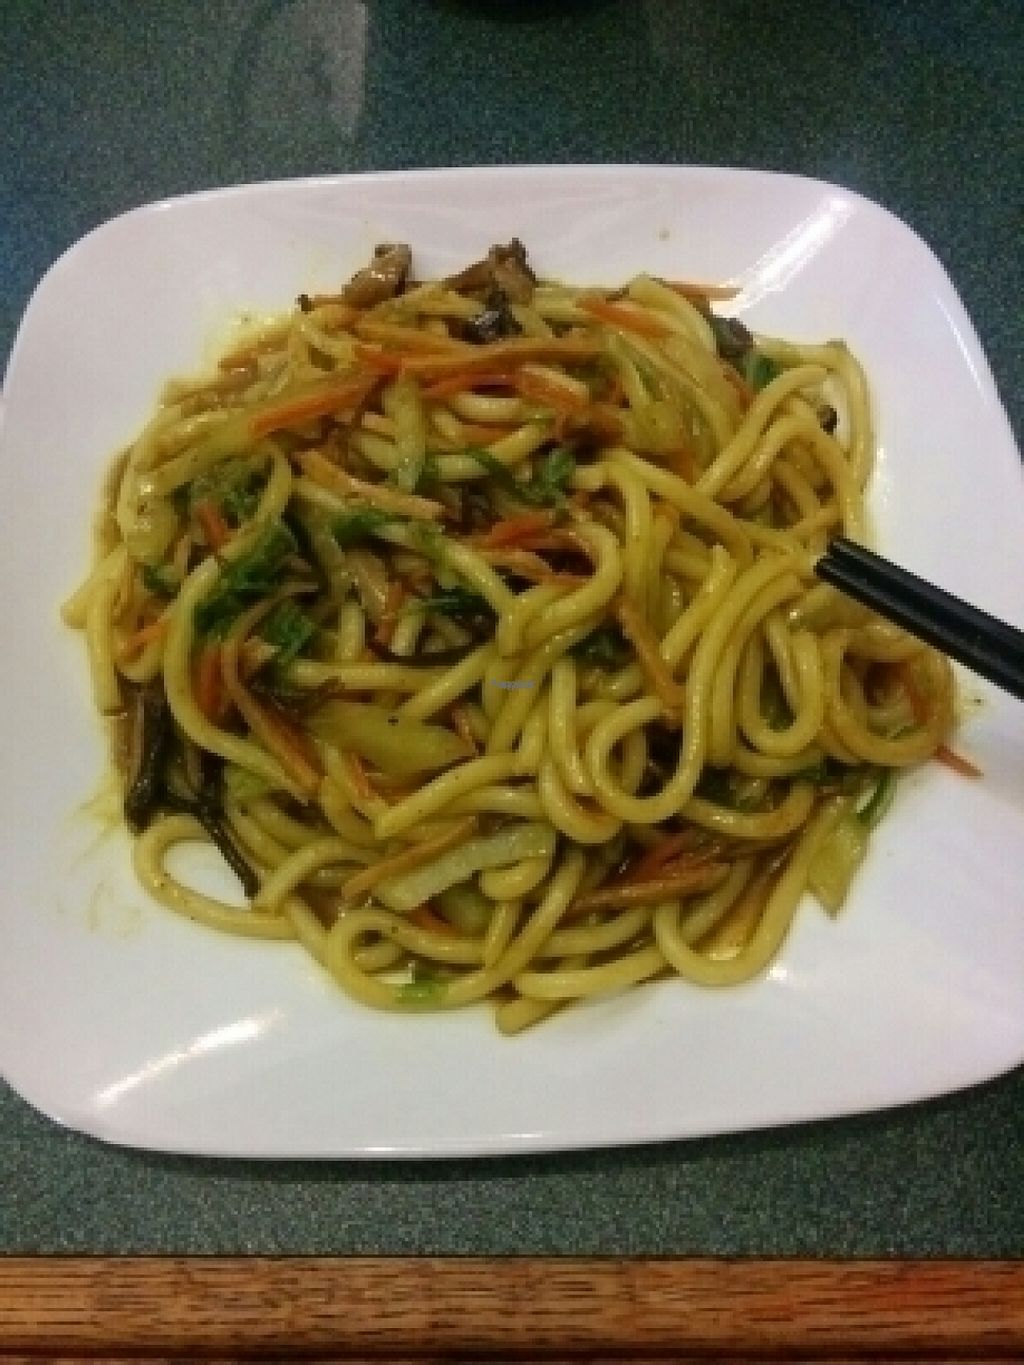 """Photo of Splendid Essence  by <a href=""""/members/profile/MichelleMolloy"""">MichelleMolloy</a> <br/>curry udon noodles <br/> August 18, 2016  - <a href='/contact/abuse/image/35442/169590'>Report</a>"""